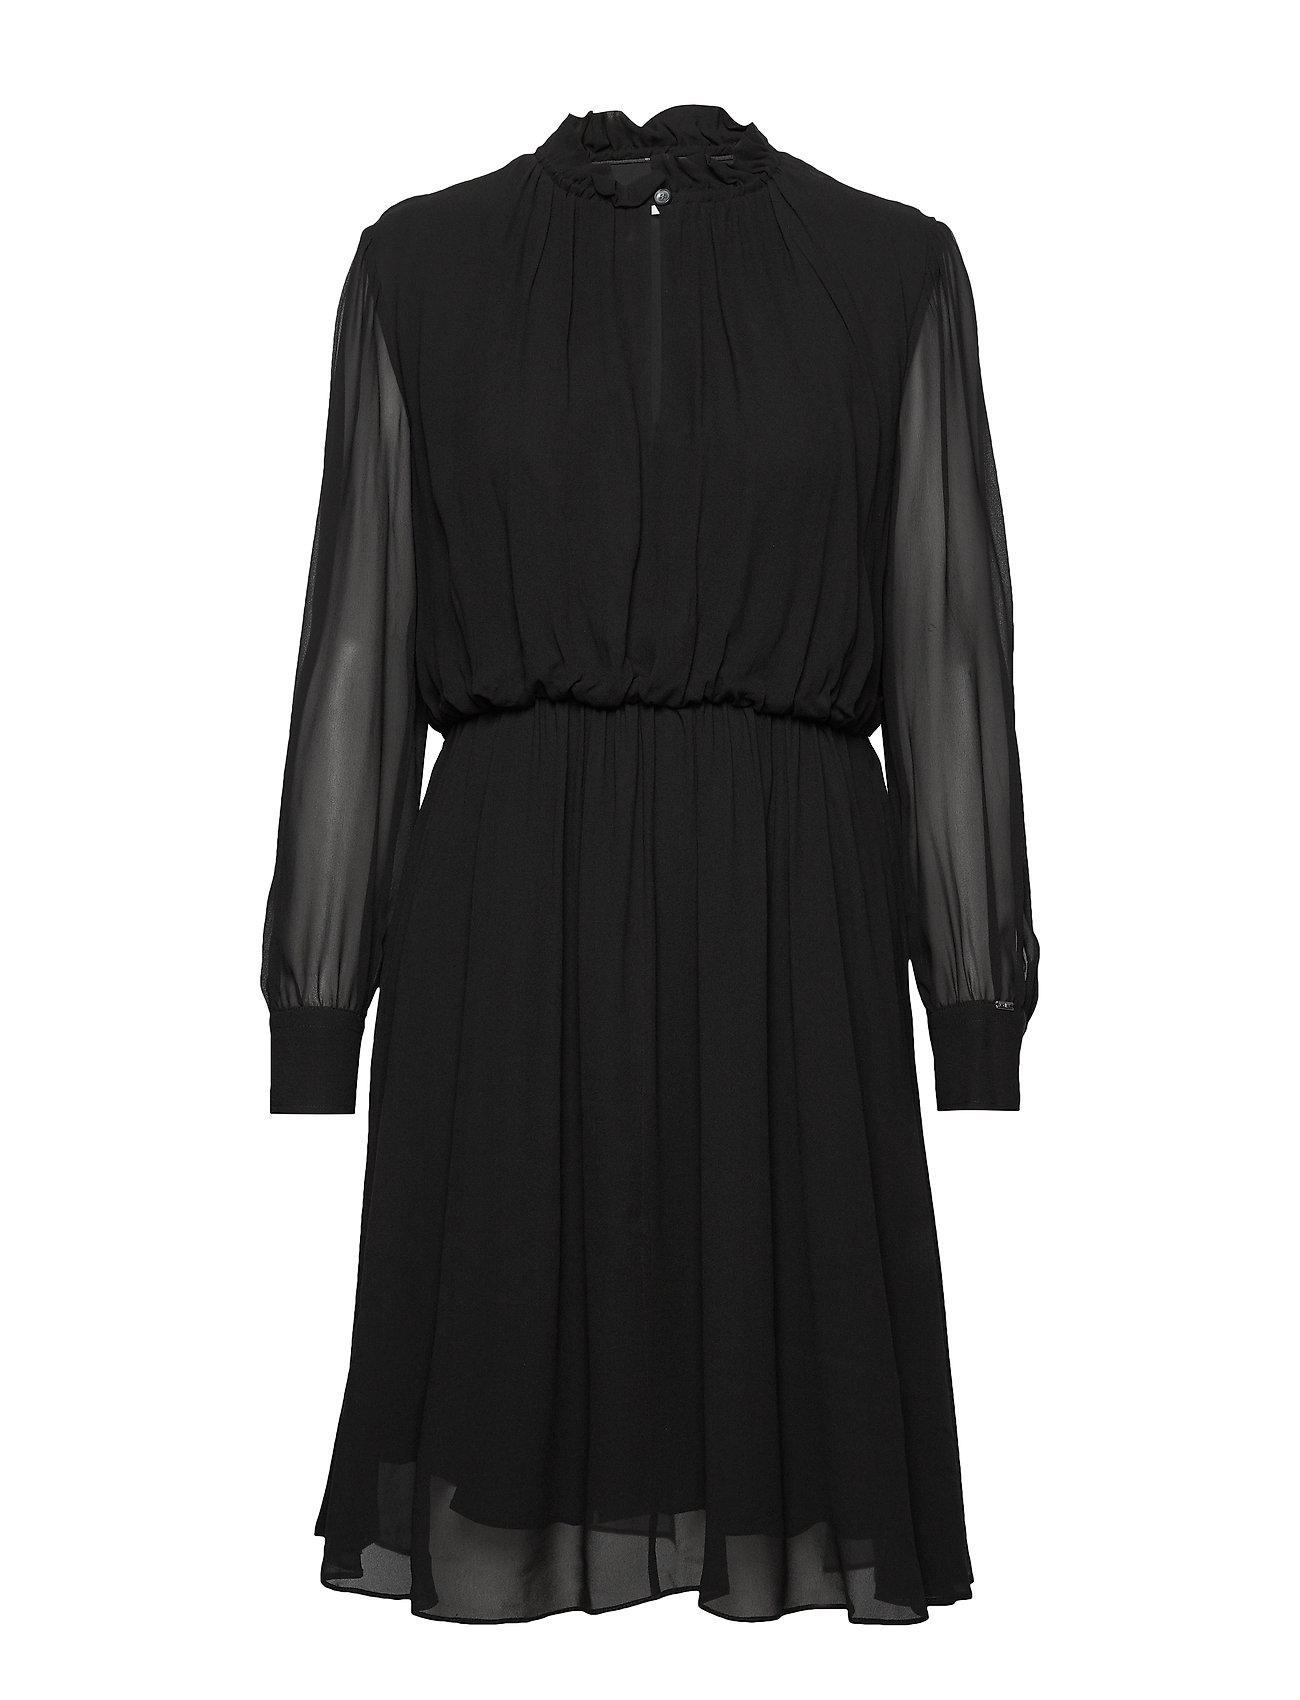 Calvin Klein GEORGETTE RUFFLE DRESS - CALVIN BLACK